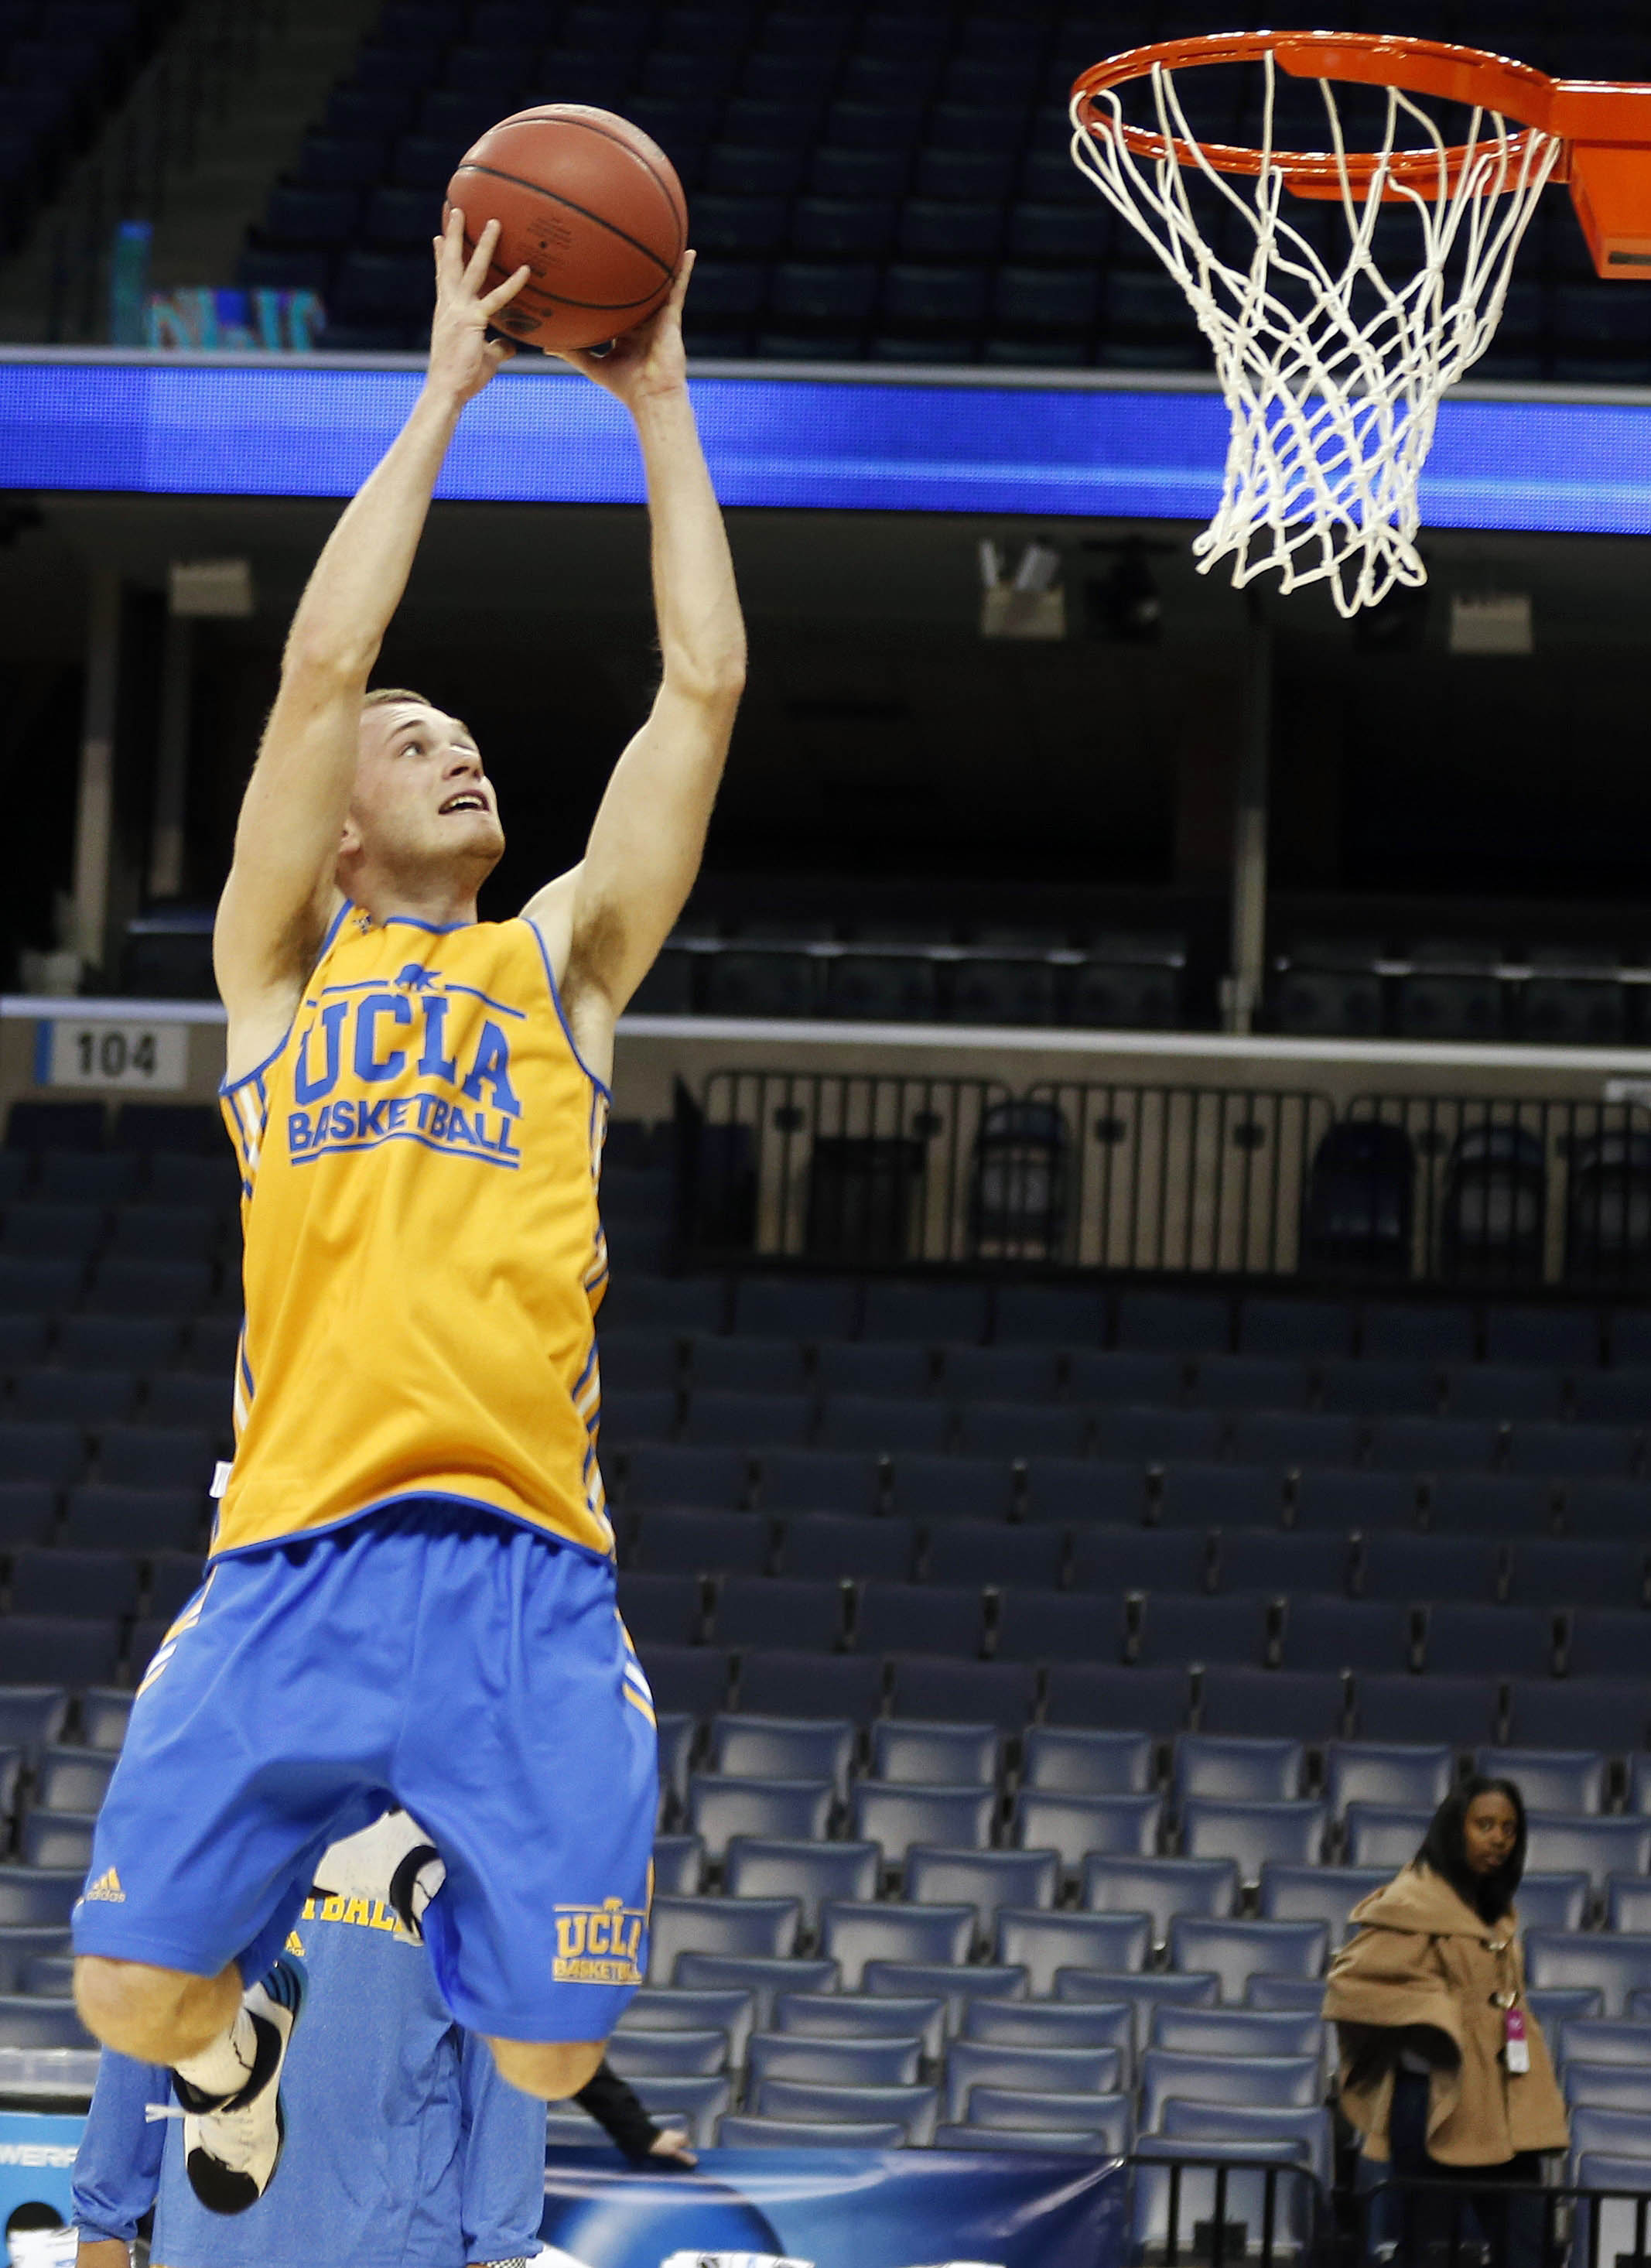 UCLA guard Bryce Alford works out during practice at the NCAA college basketball tournament, Wednesday, March 26, 2014, in Memphis, Tenn. UCLA plays Florida in a regional semifinal on Thursday